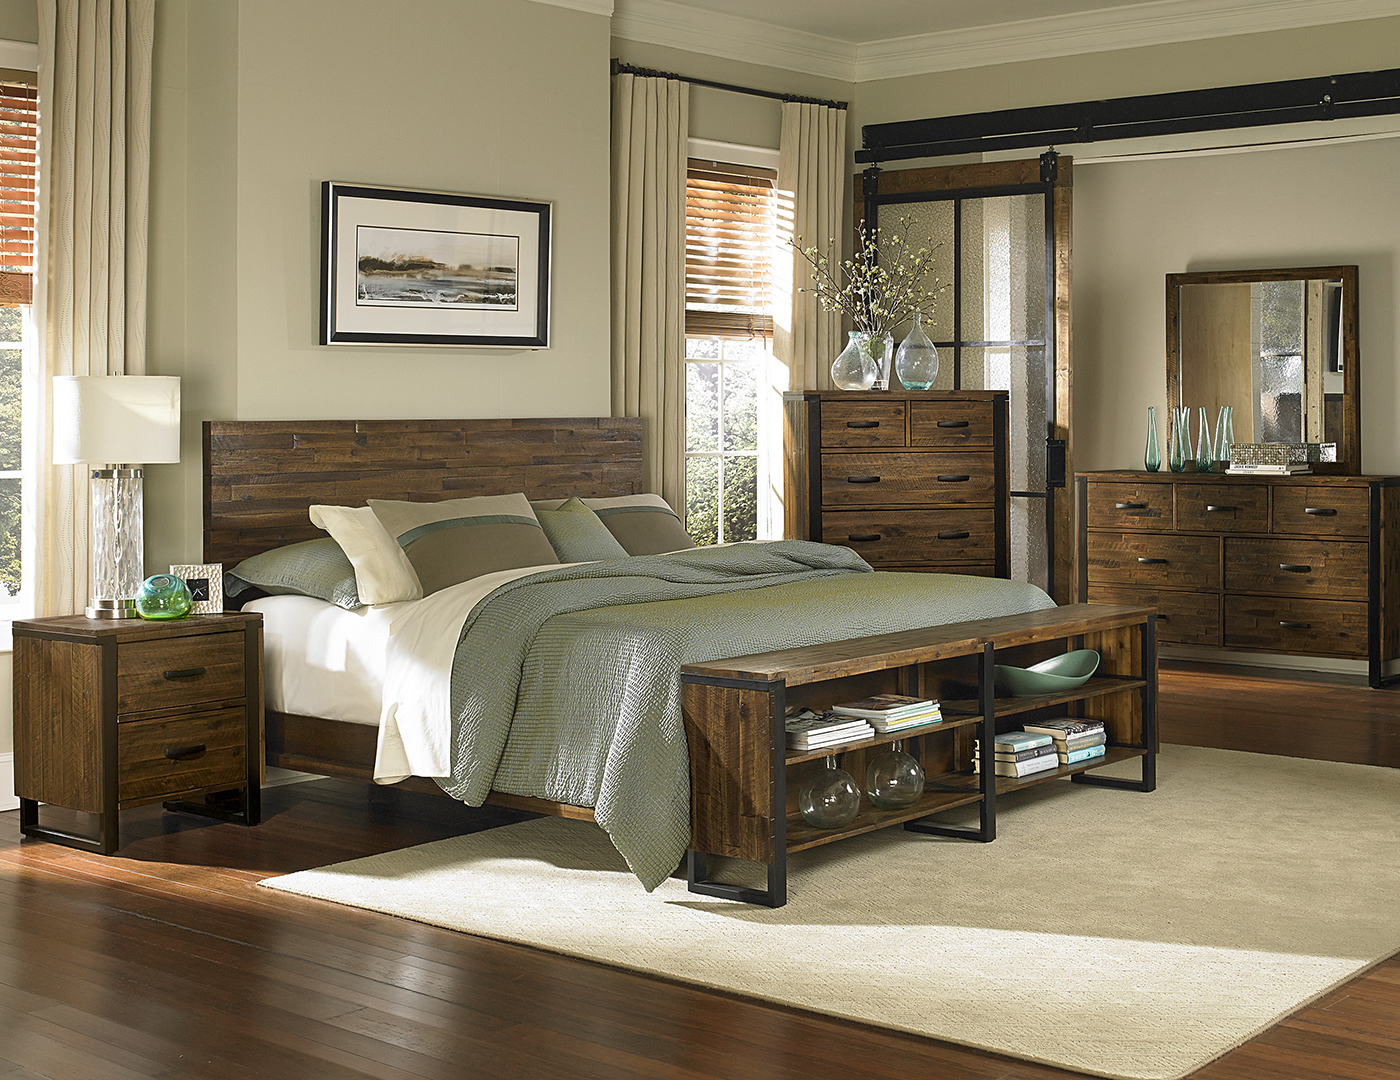 Direct Designs® Sierra King Panel Bed